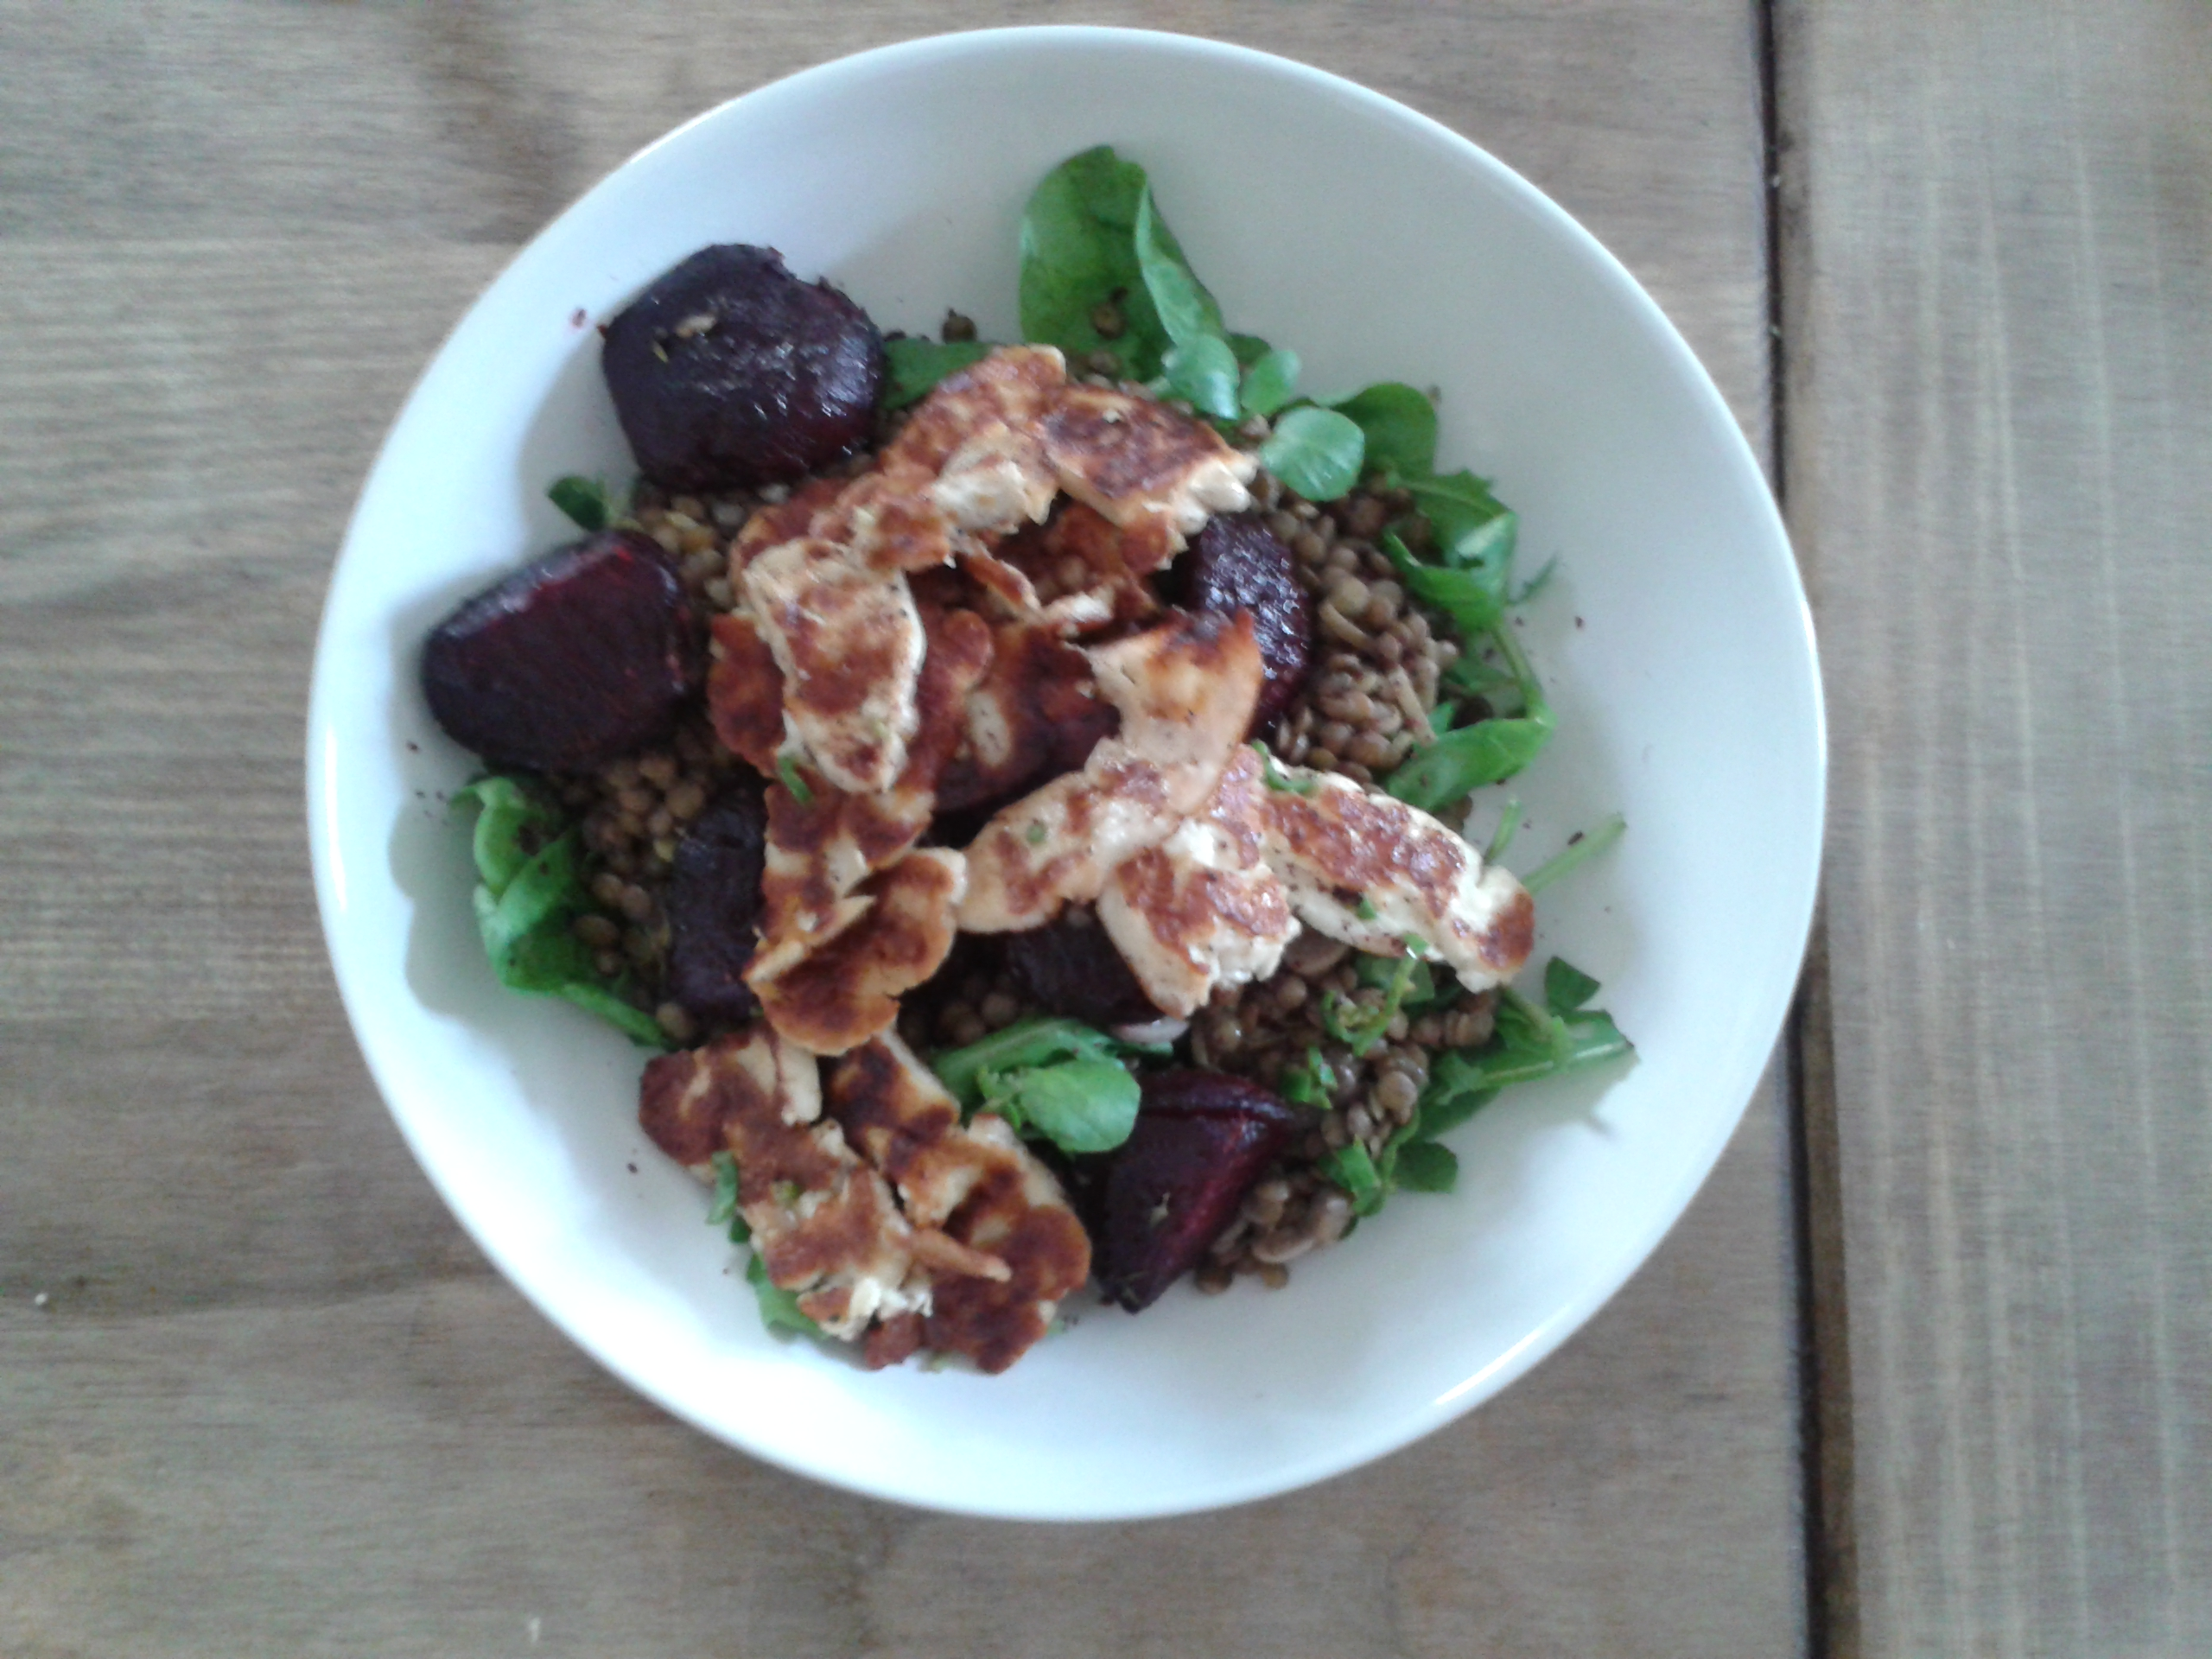 Roast Beetroot, Halloumi and Puy Lentils – Hermione's Pantry